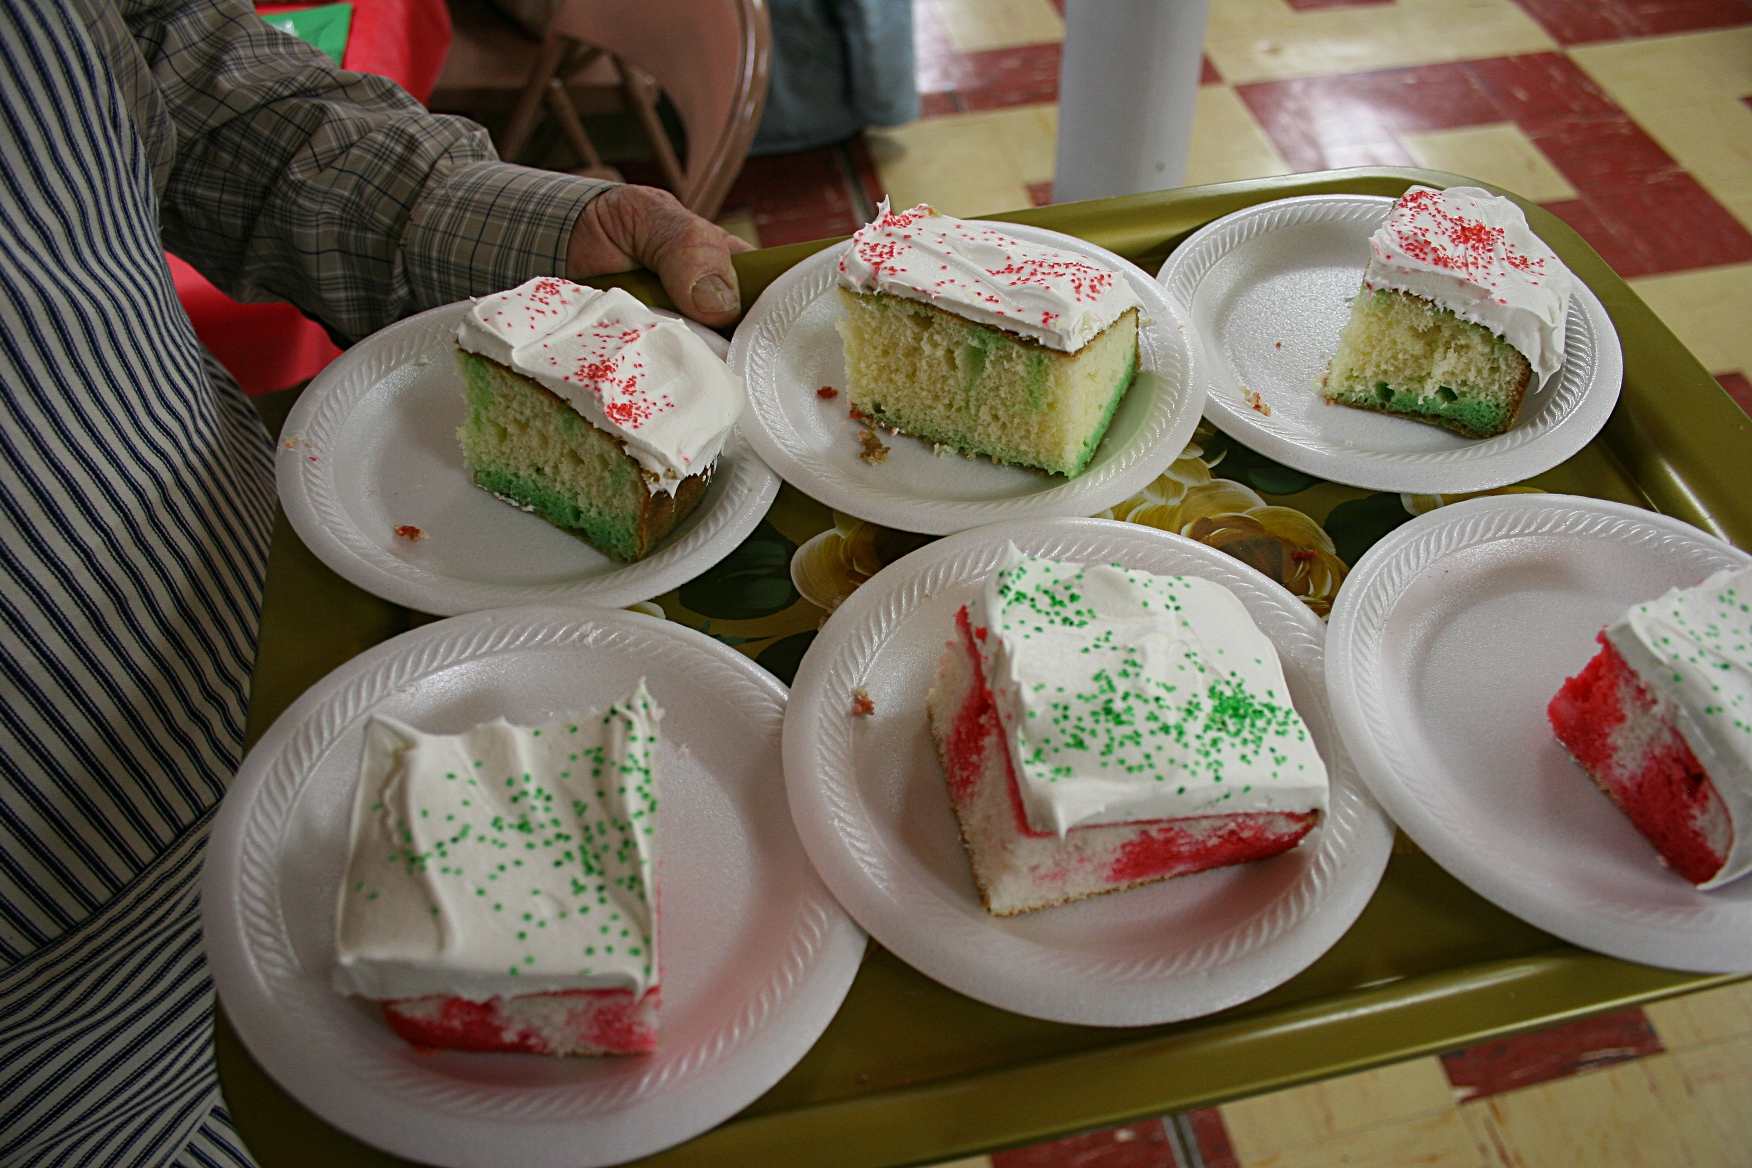 And another worker handed out Christmas cake.